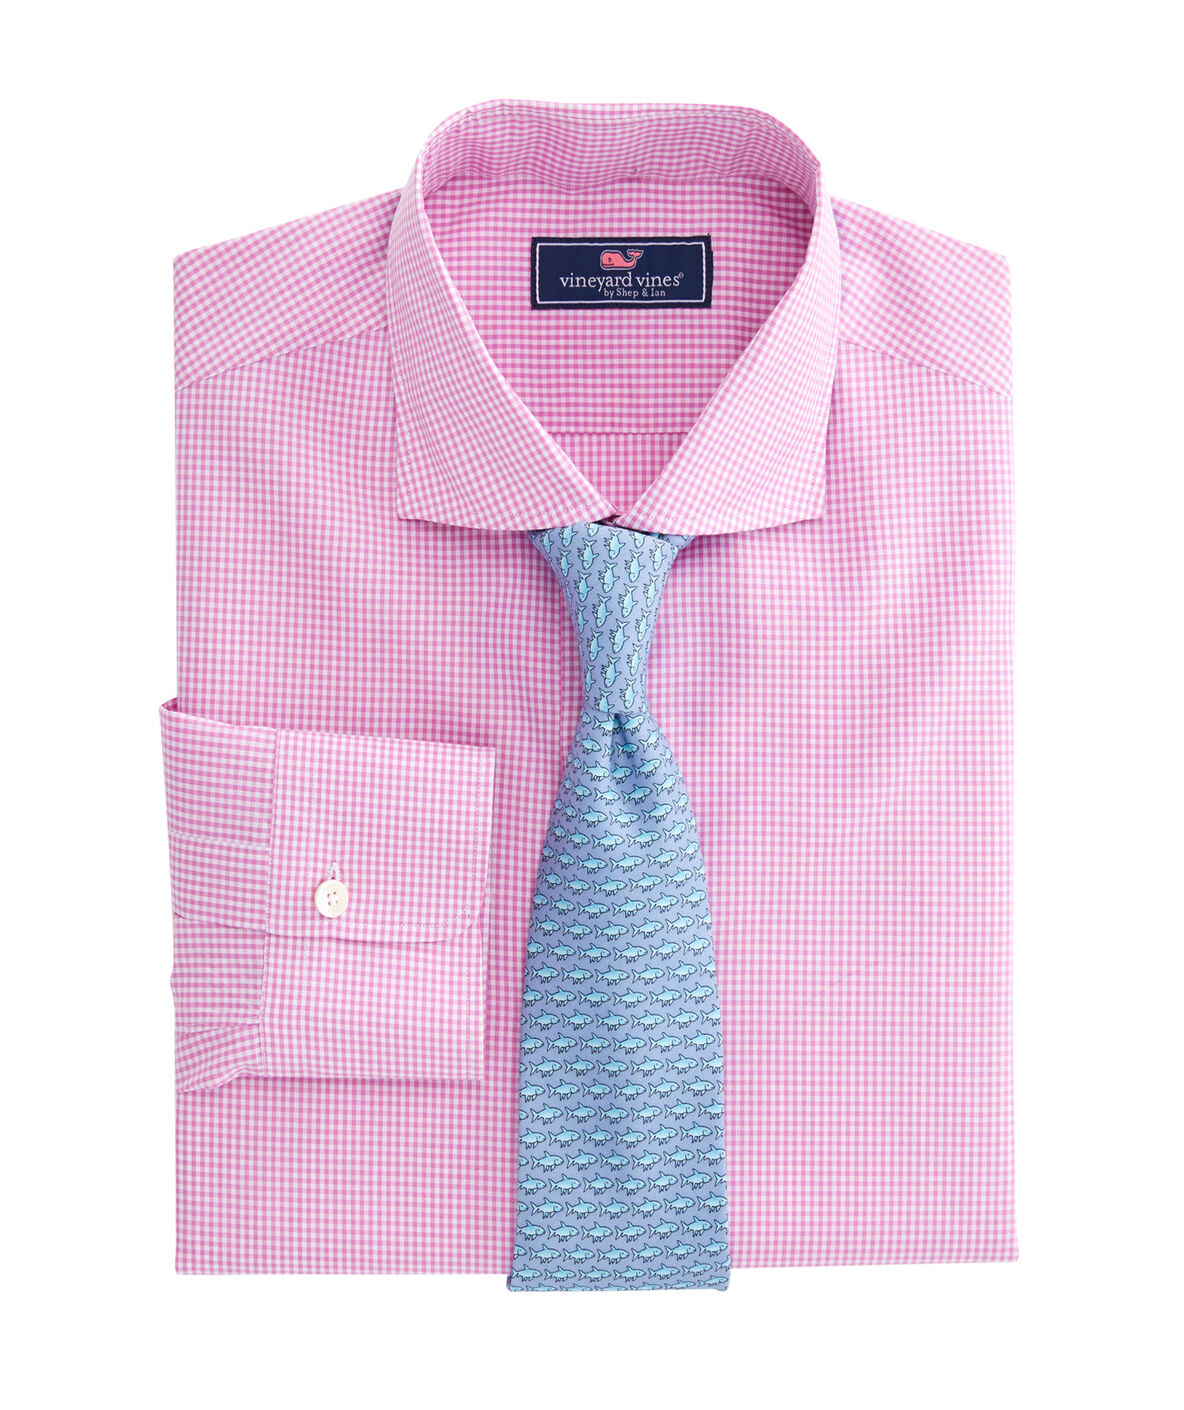 Men's Dress shirts- Button Down Shirts for Men at vineyard vines